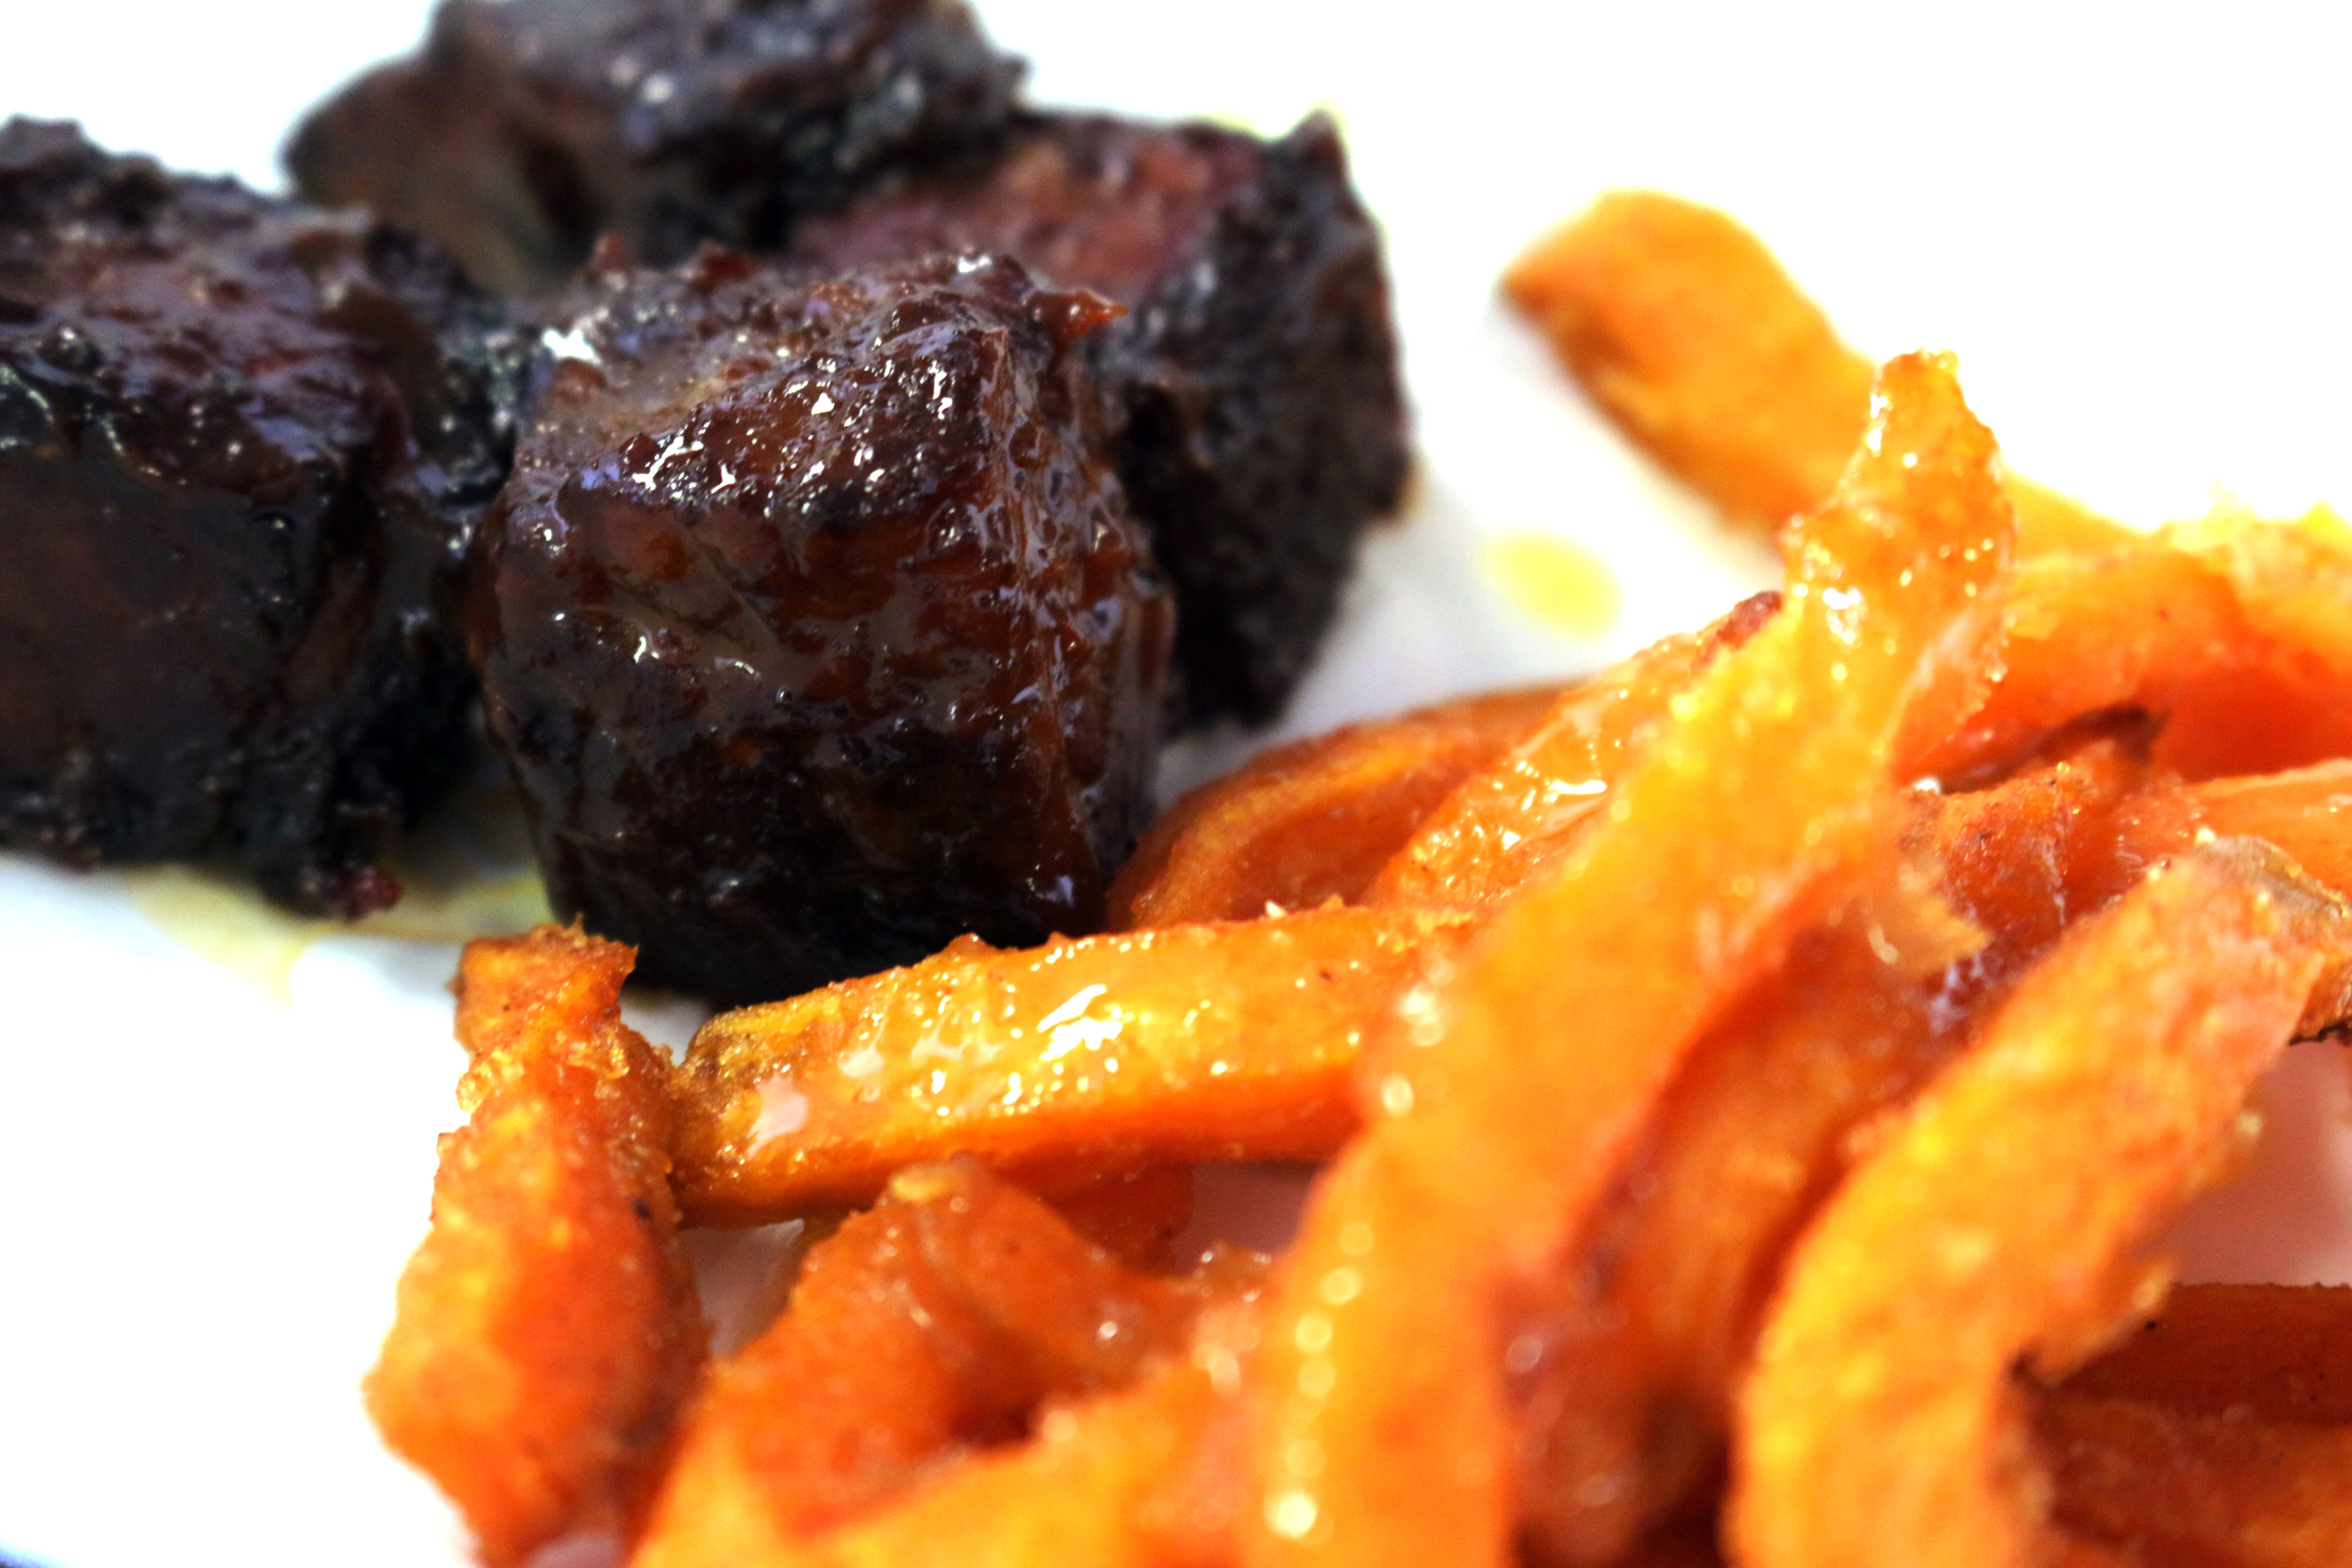 Brisket Ends & Sweet Potato Fries